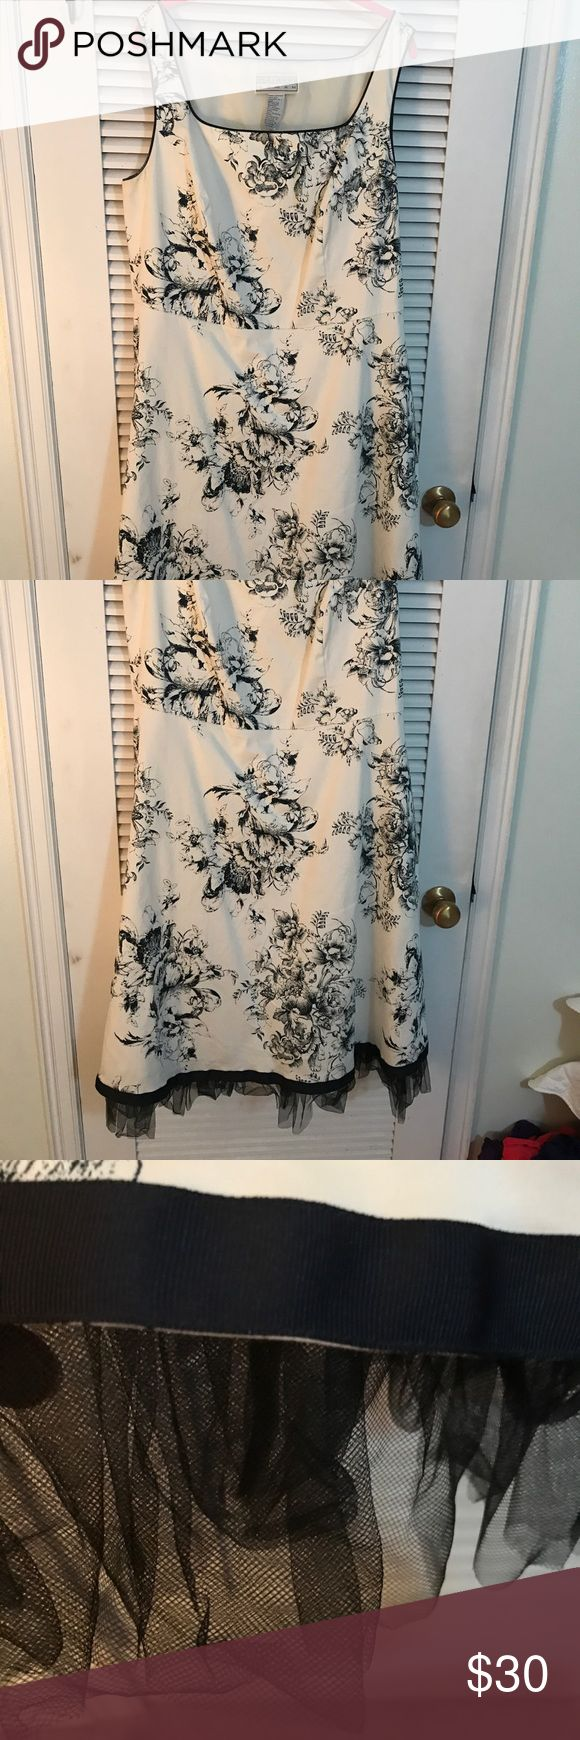 Jessica Howard Woman 18w Floral Toile Dress A-Line Jessica Howard Woman 18w Floral Toile Dress A-Line, blue and ivory, with black tulle lining at bottom. Like new!  (Note, the sweater that was originally with the dress is not included, which is reflected in the price). Jessica Howard Dresses Midi